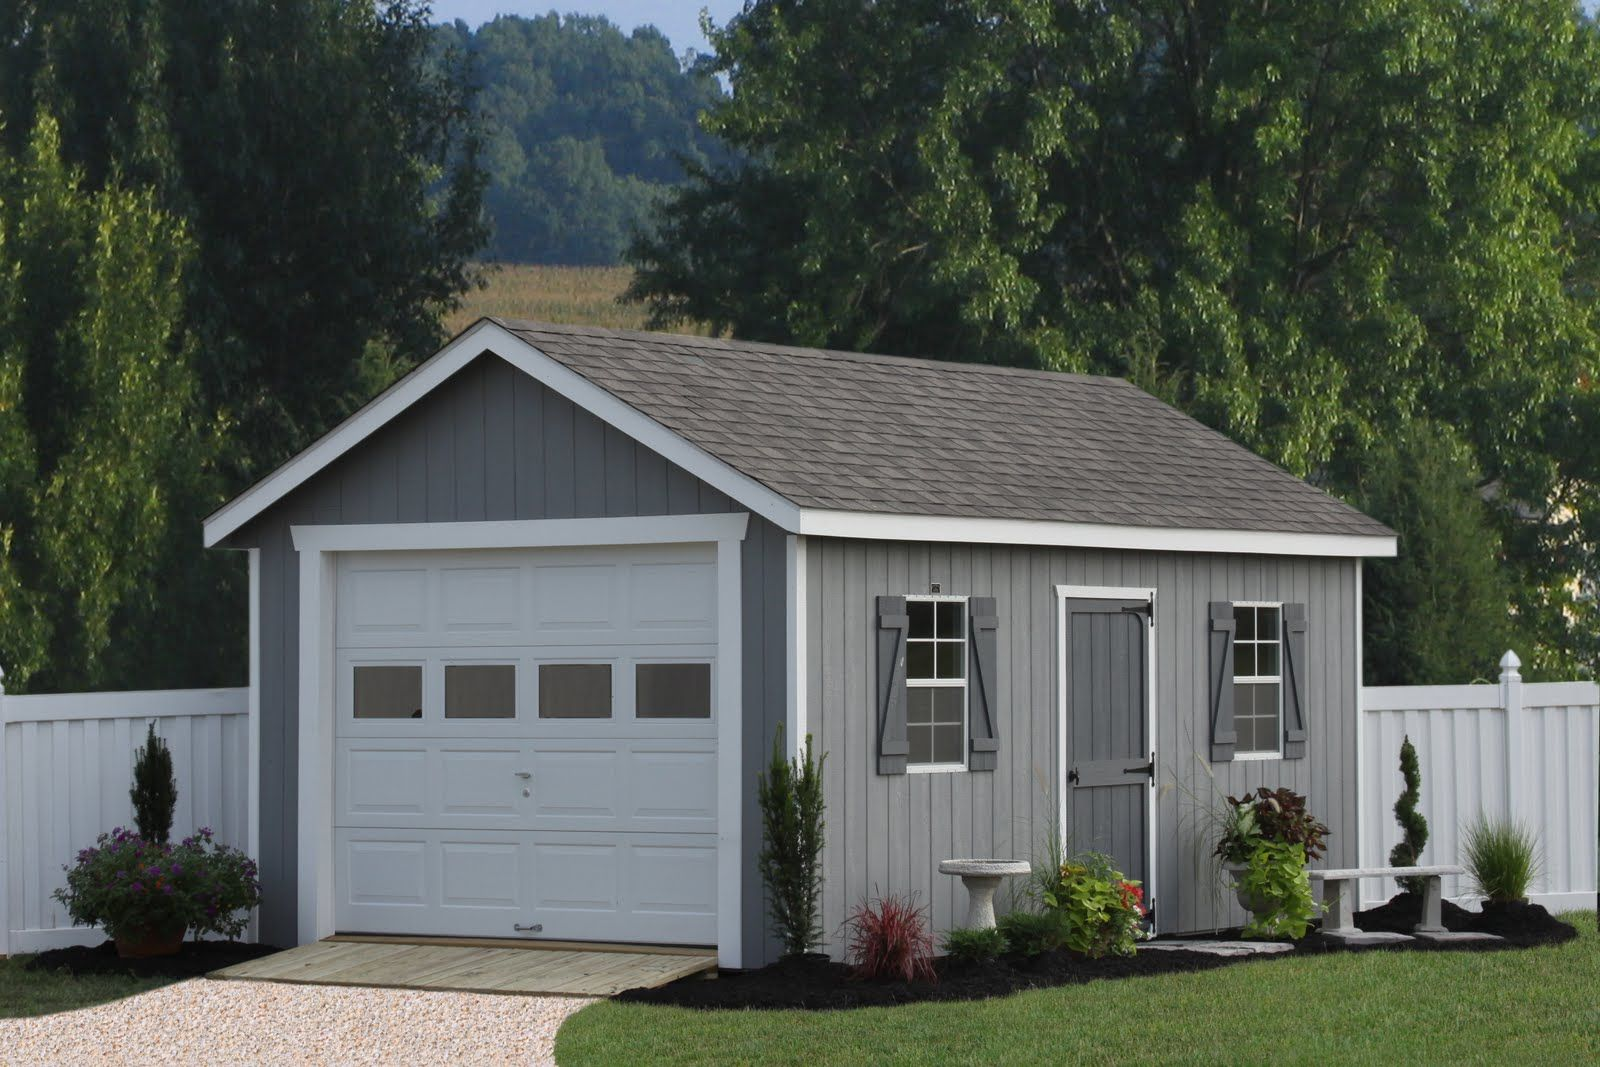 Add on garage plans 12x20 classic one car garage for 1 5 car garage size